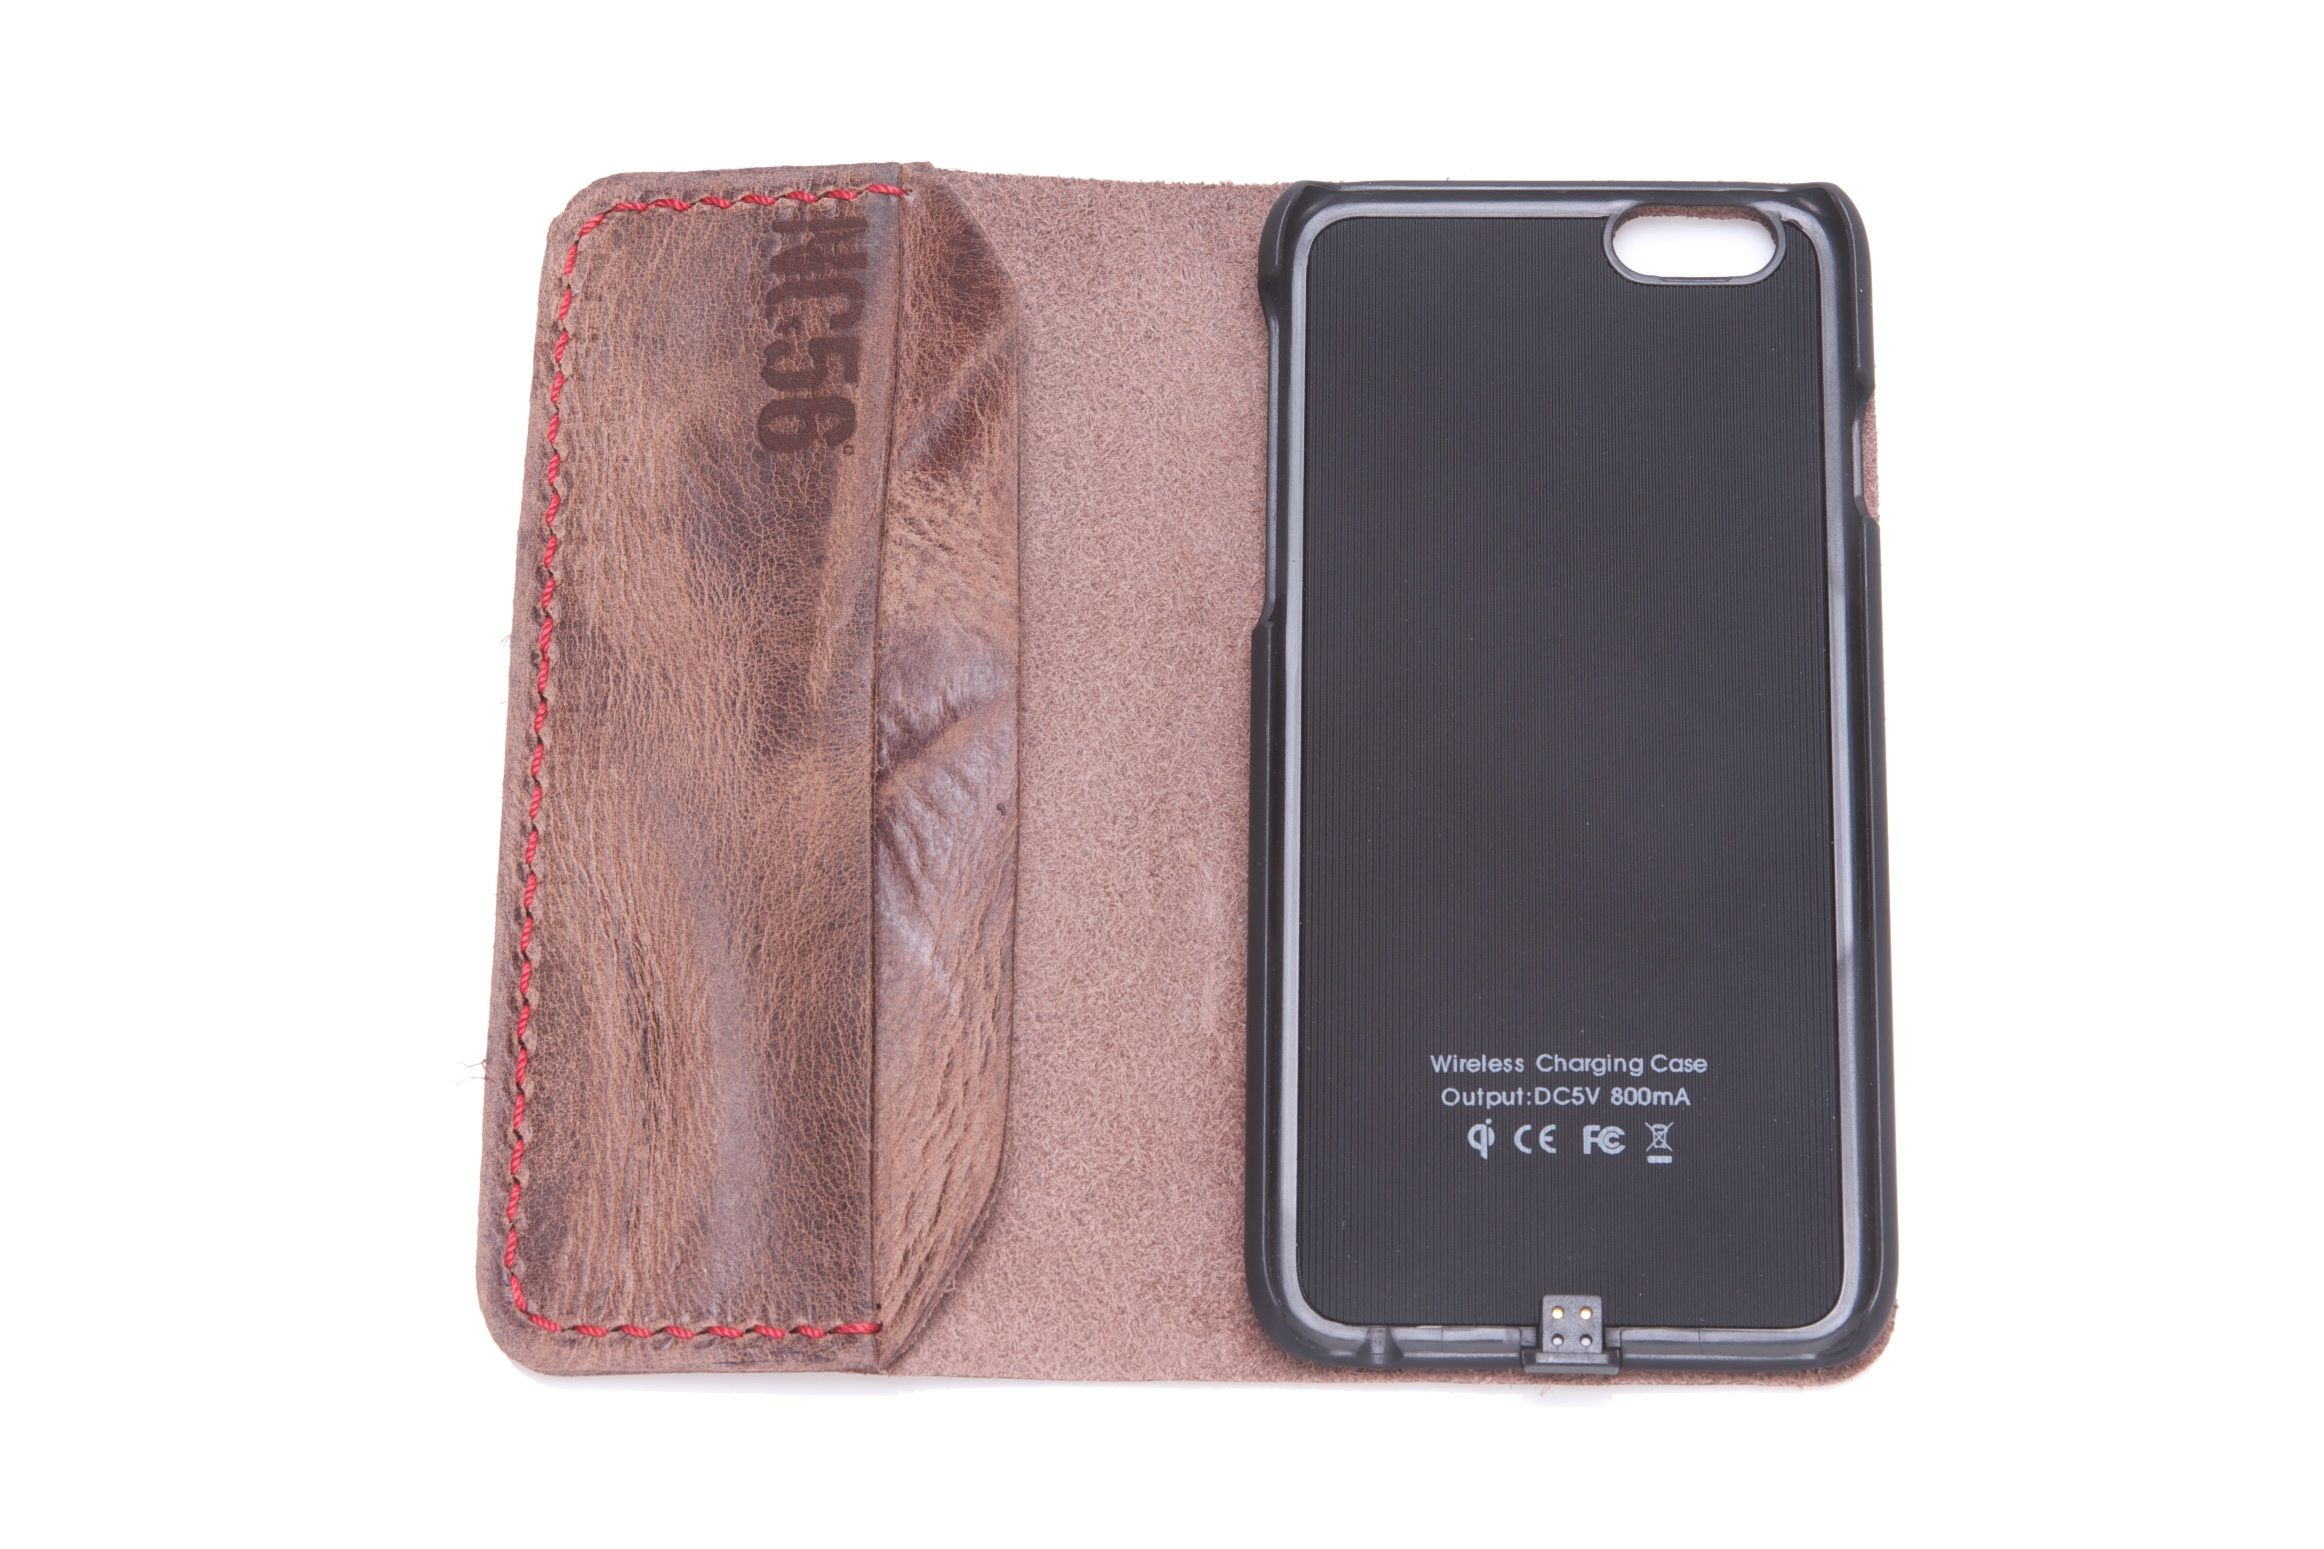 Wireless Charging Station Iphone 6 Leather Case Lederhulle Fur Iphone 6 Ladestation Fur Iphone 6 Lederhulle Iphone 6 Iphone